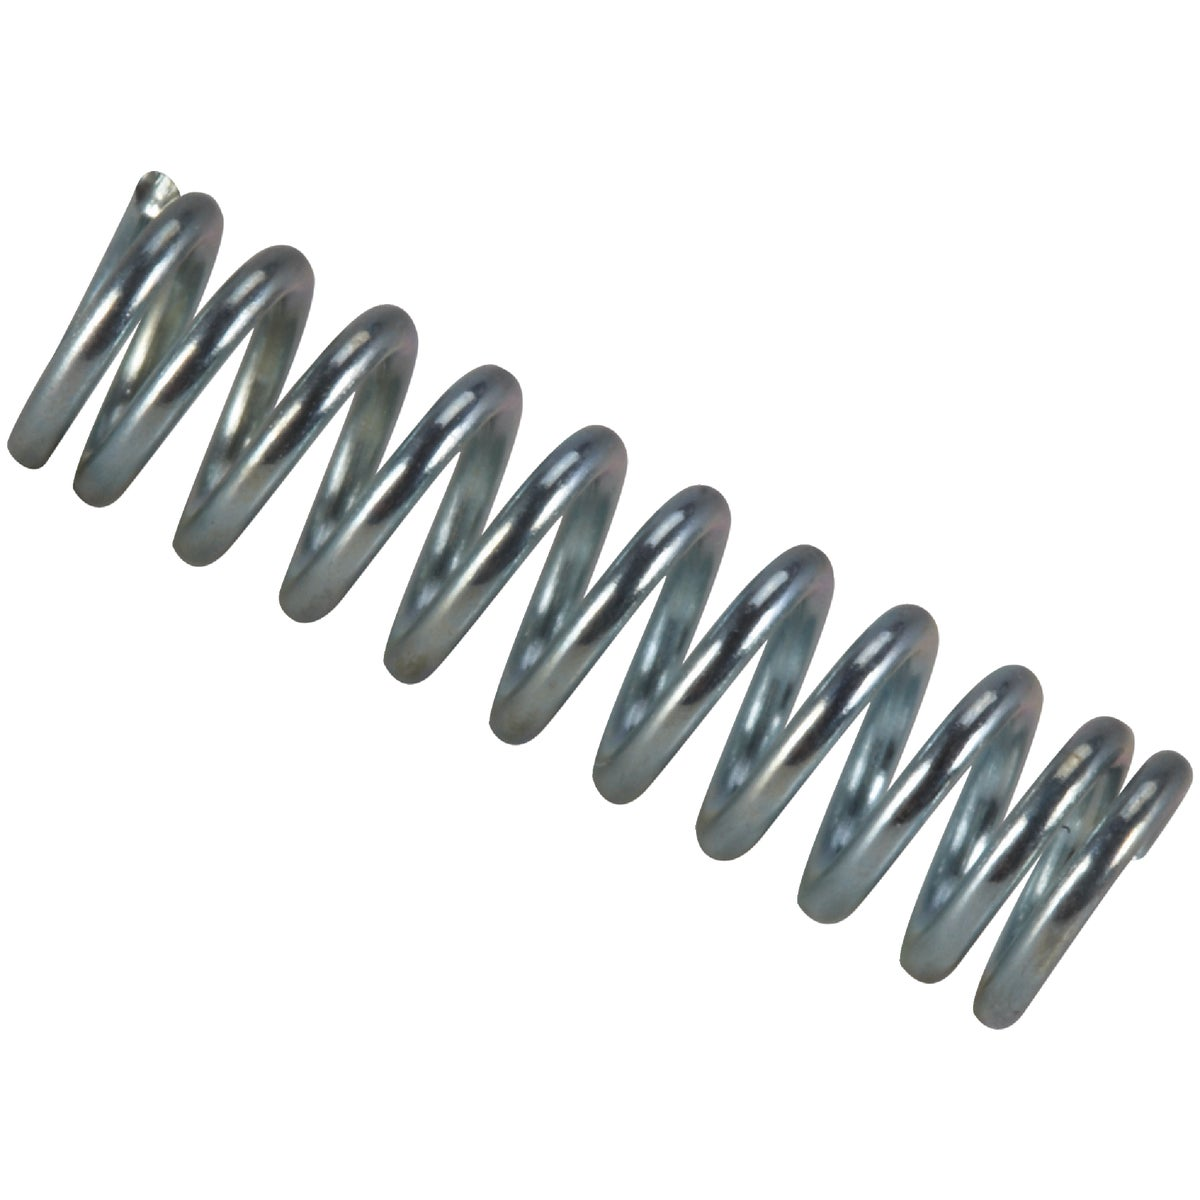 COMPRESSION SPRING - C-730 by Century Spring Corp